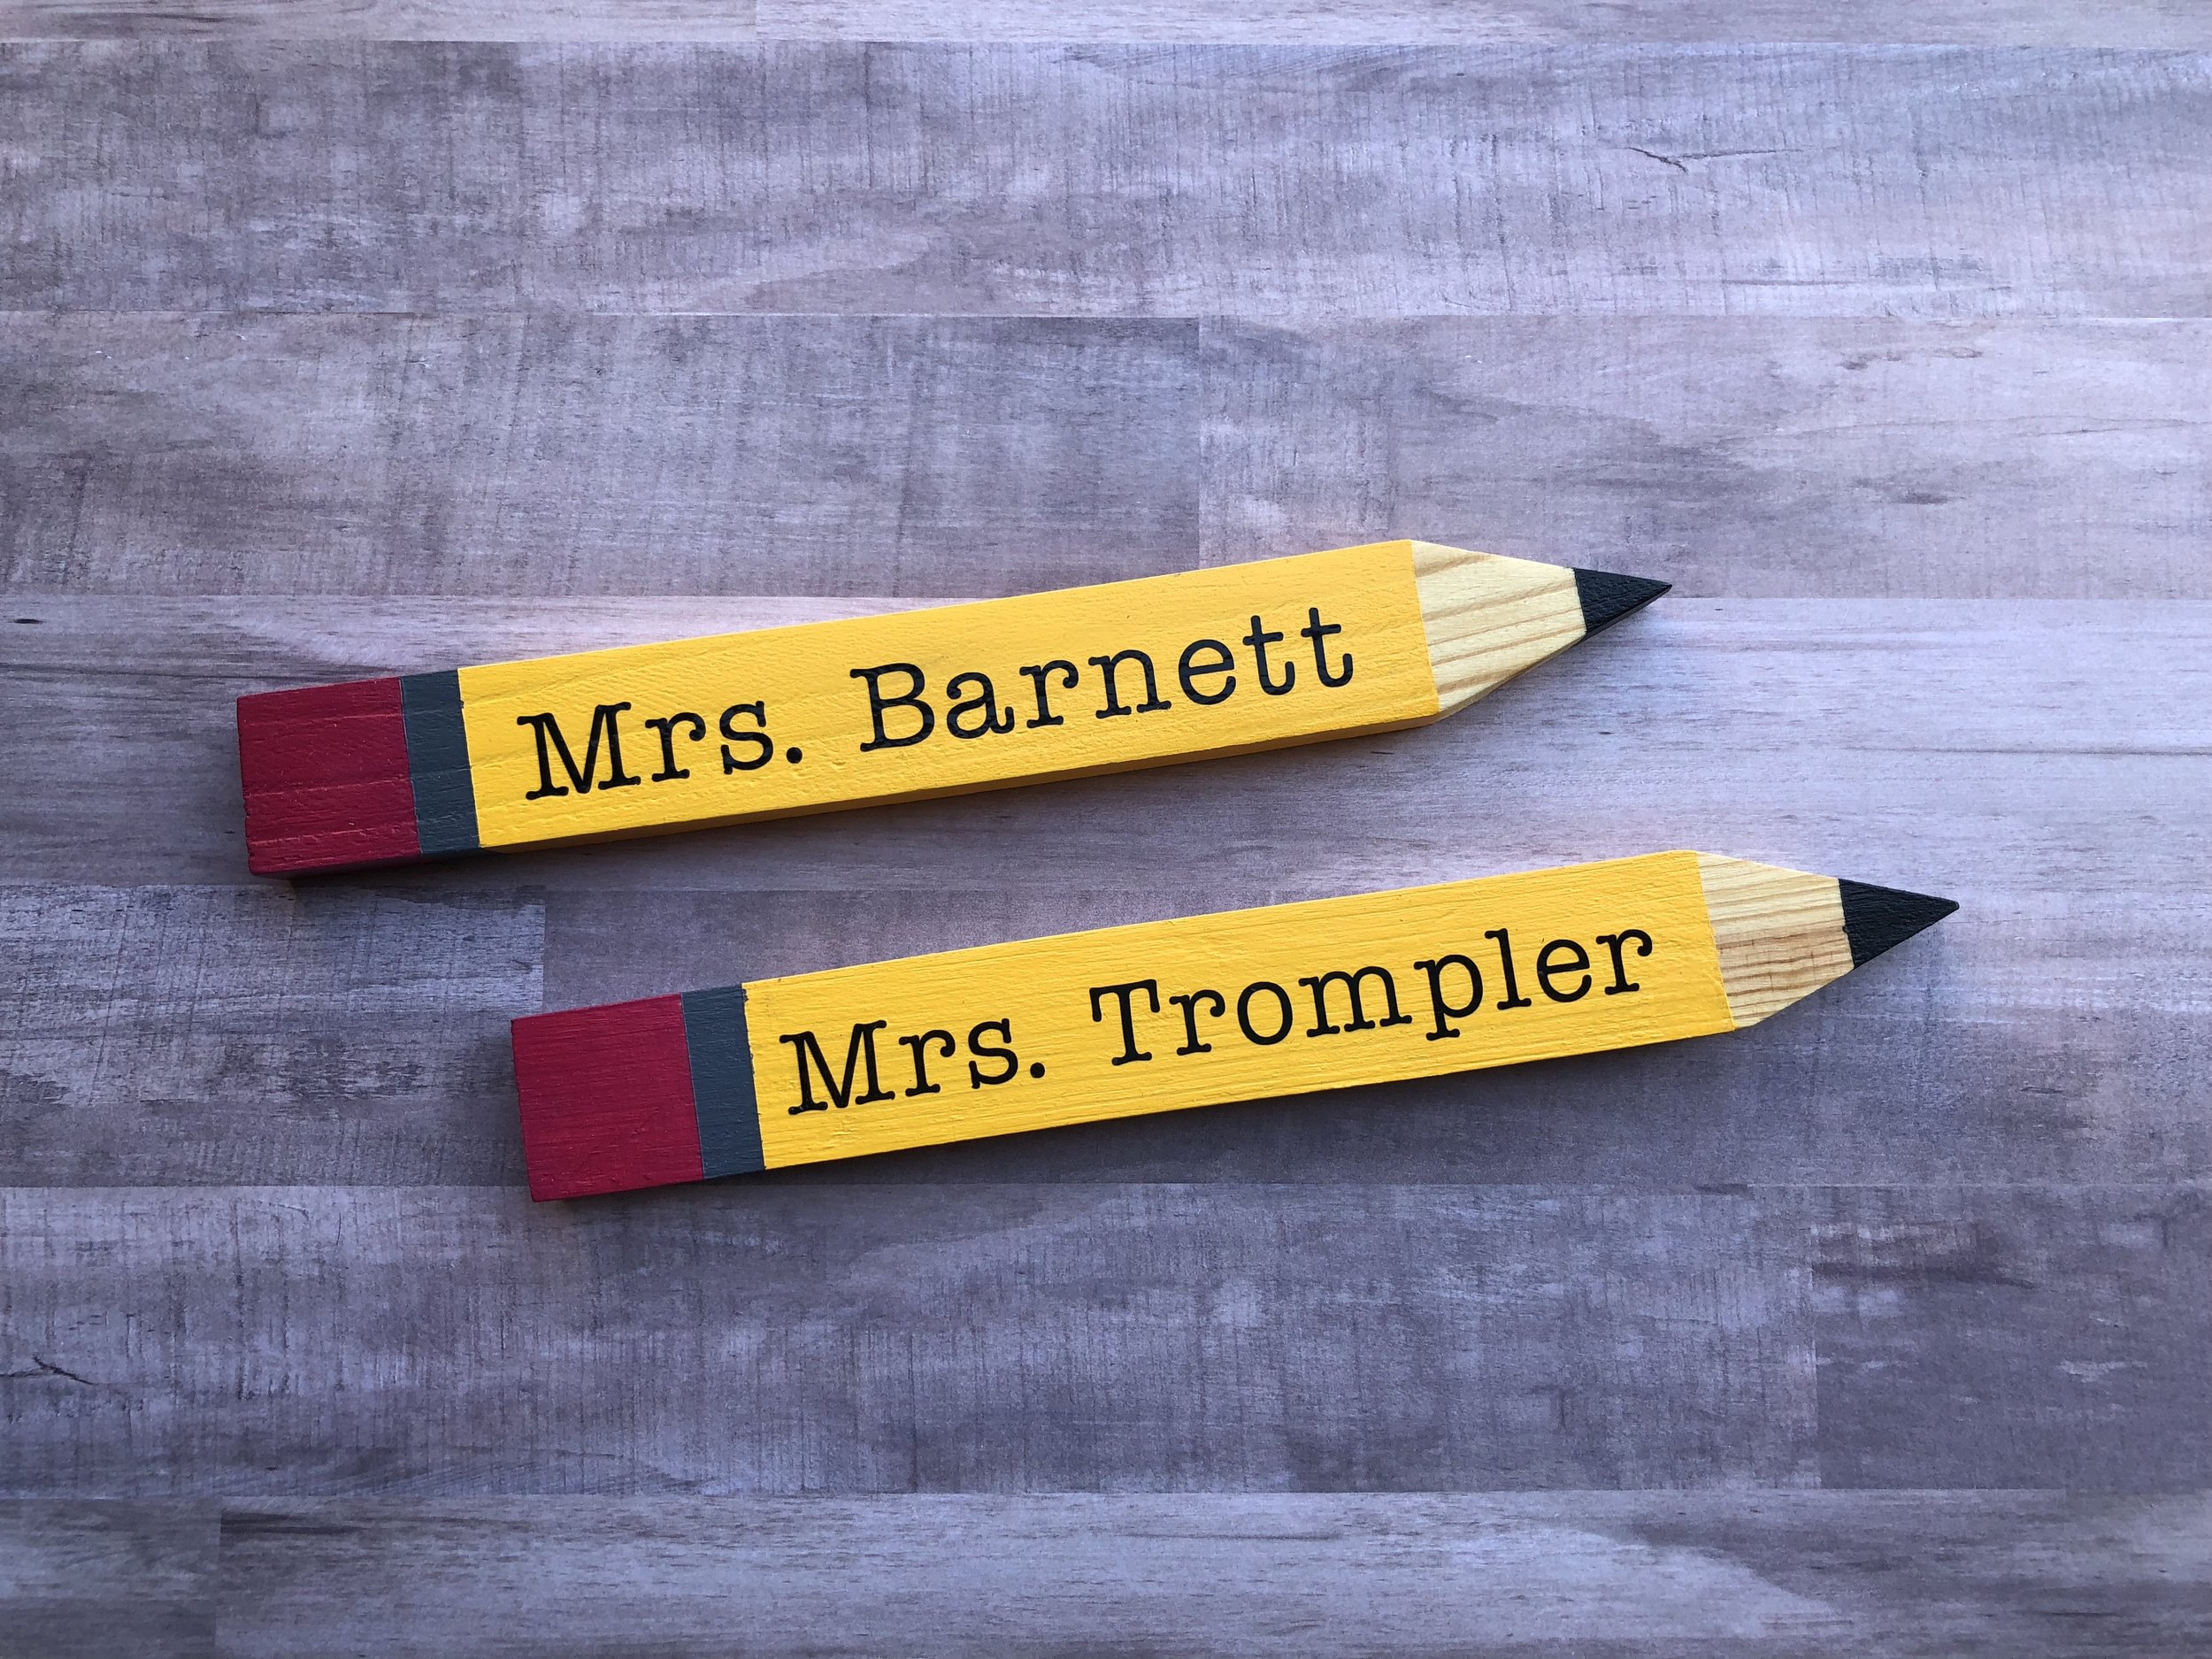 Back to School Cricut Project: Personalized Wooden Teacher Pencils by Creative Cutting Classroom